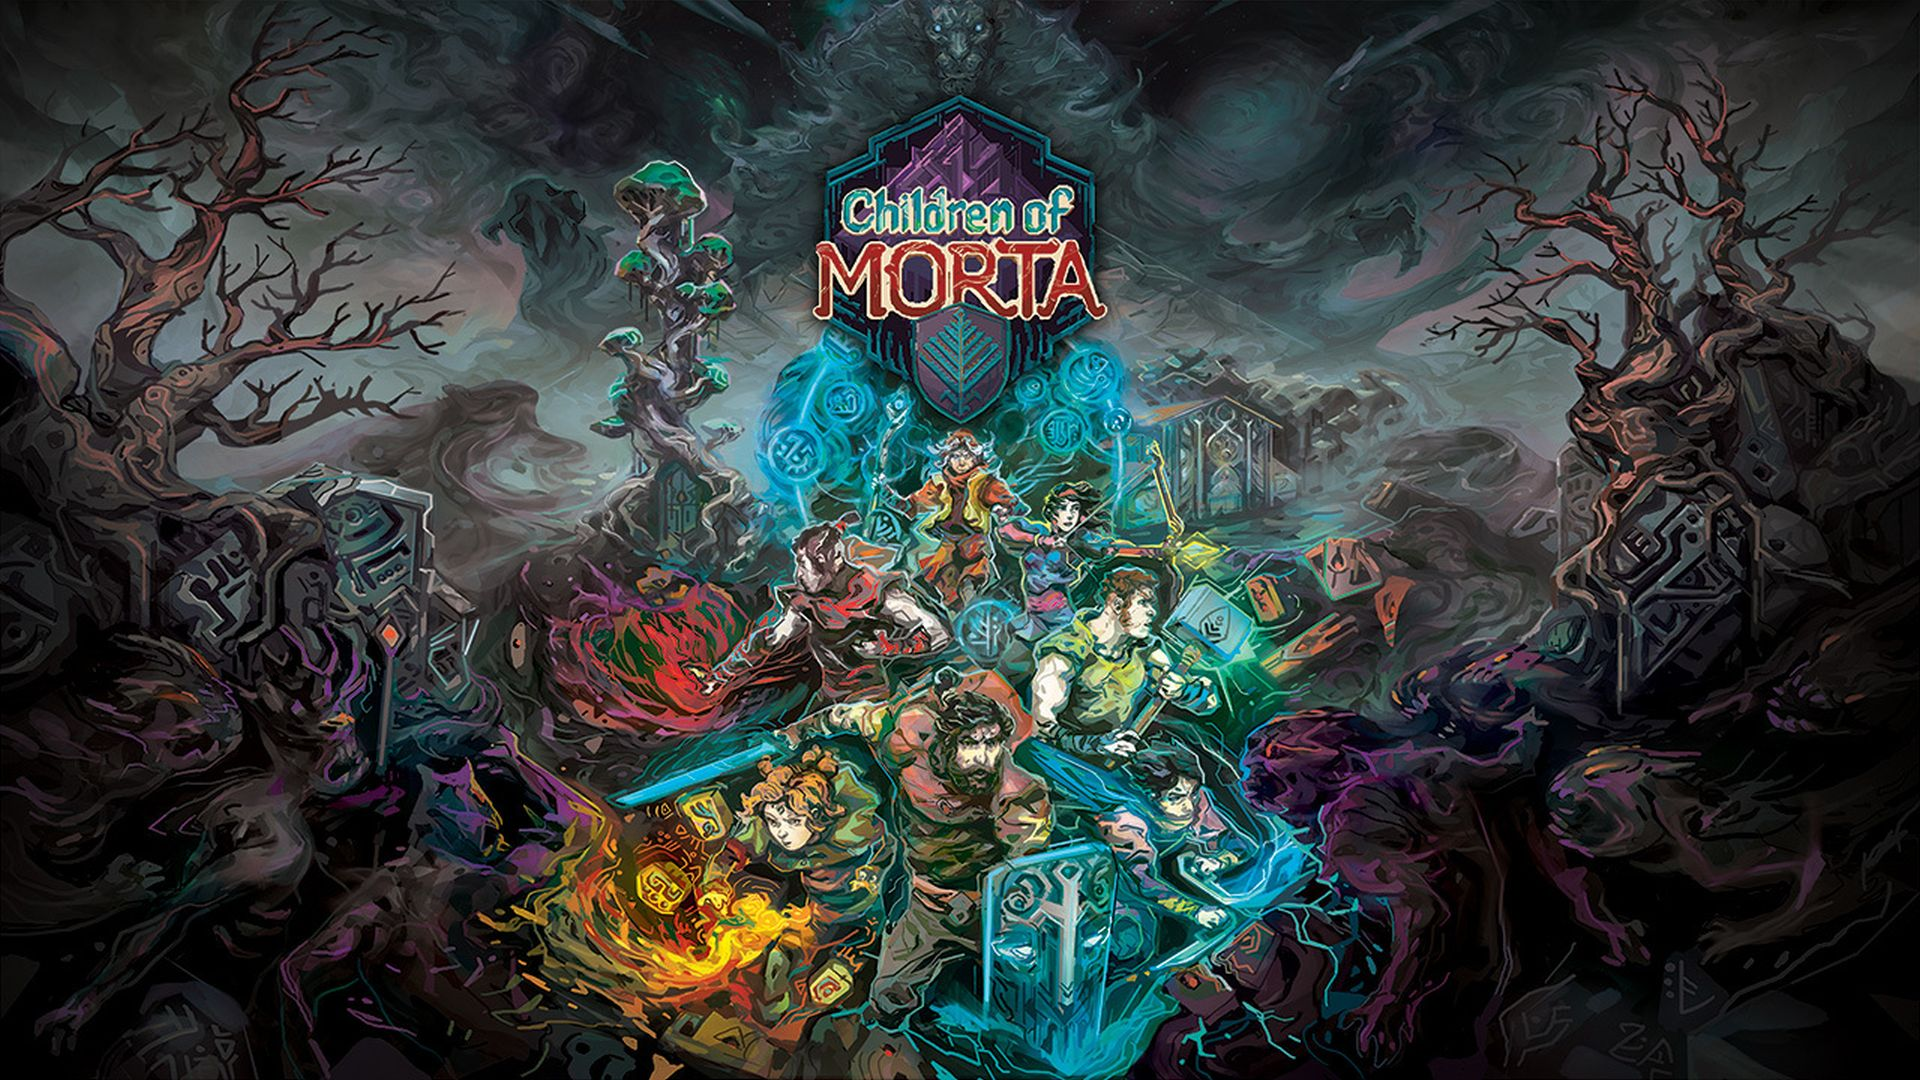 Children Morta Releasing This Summer, Children-of-Morta.jp